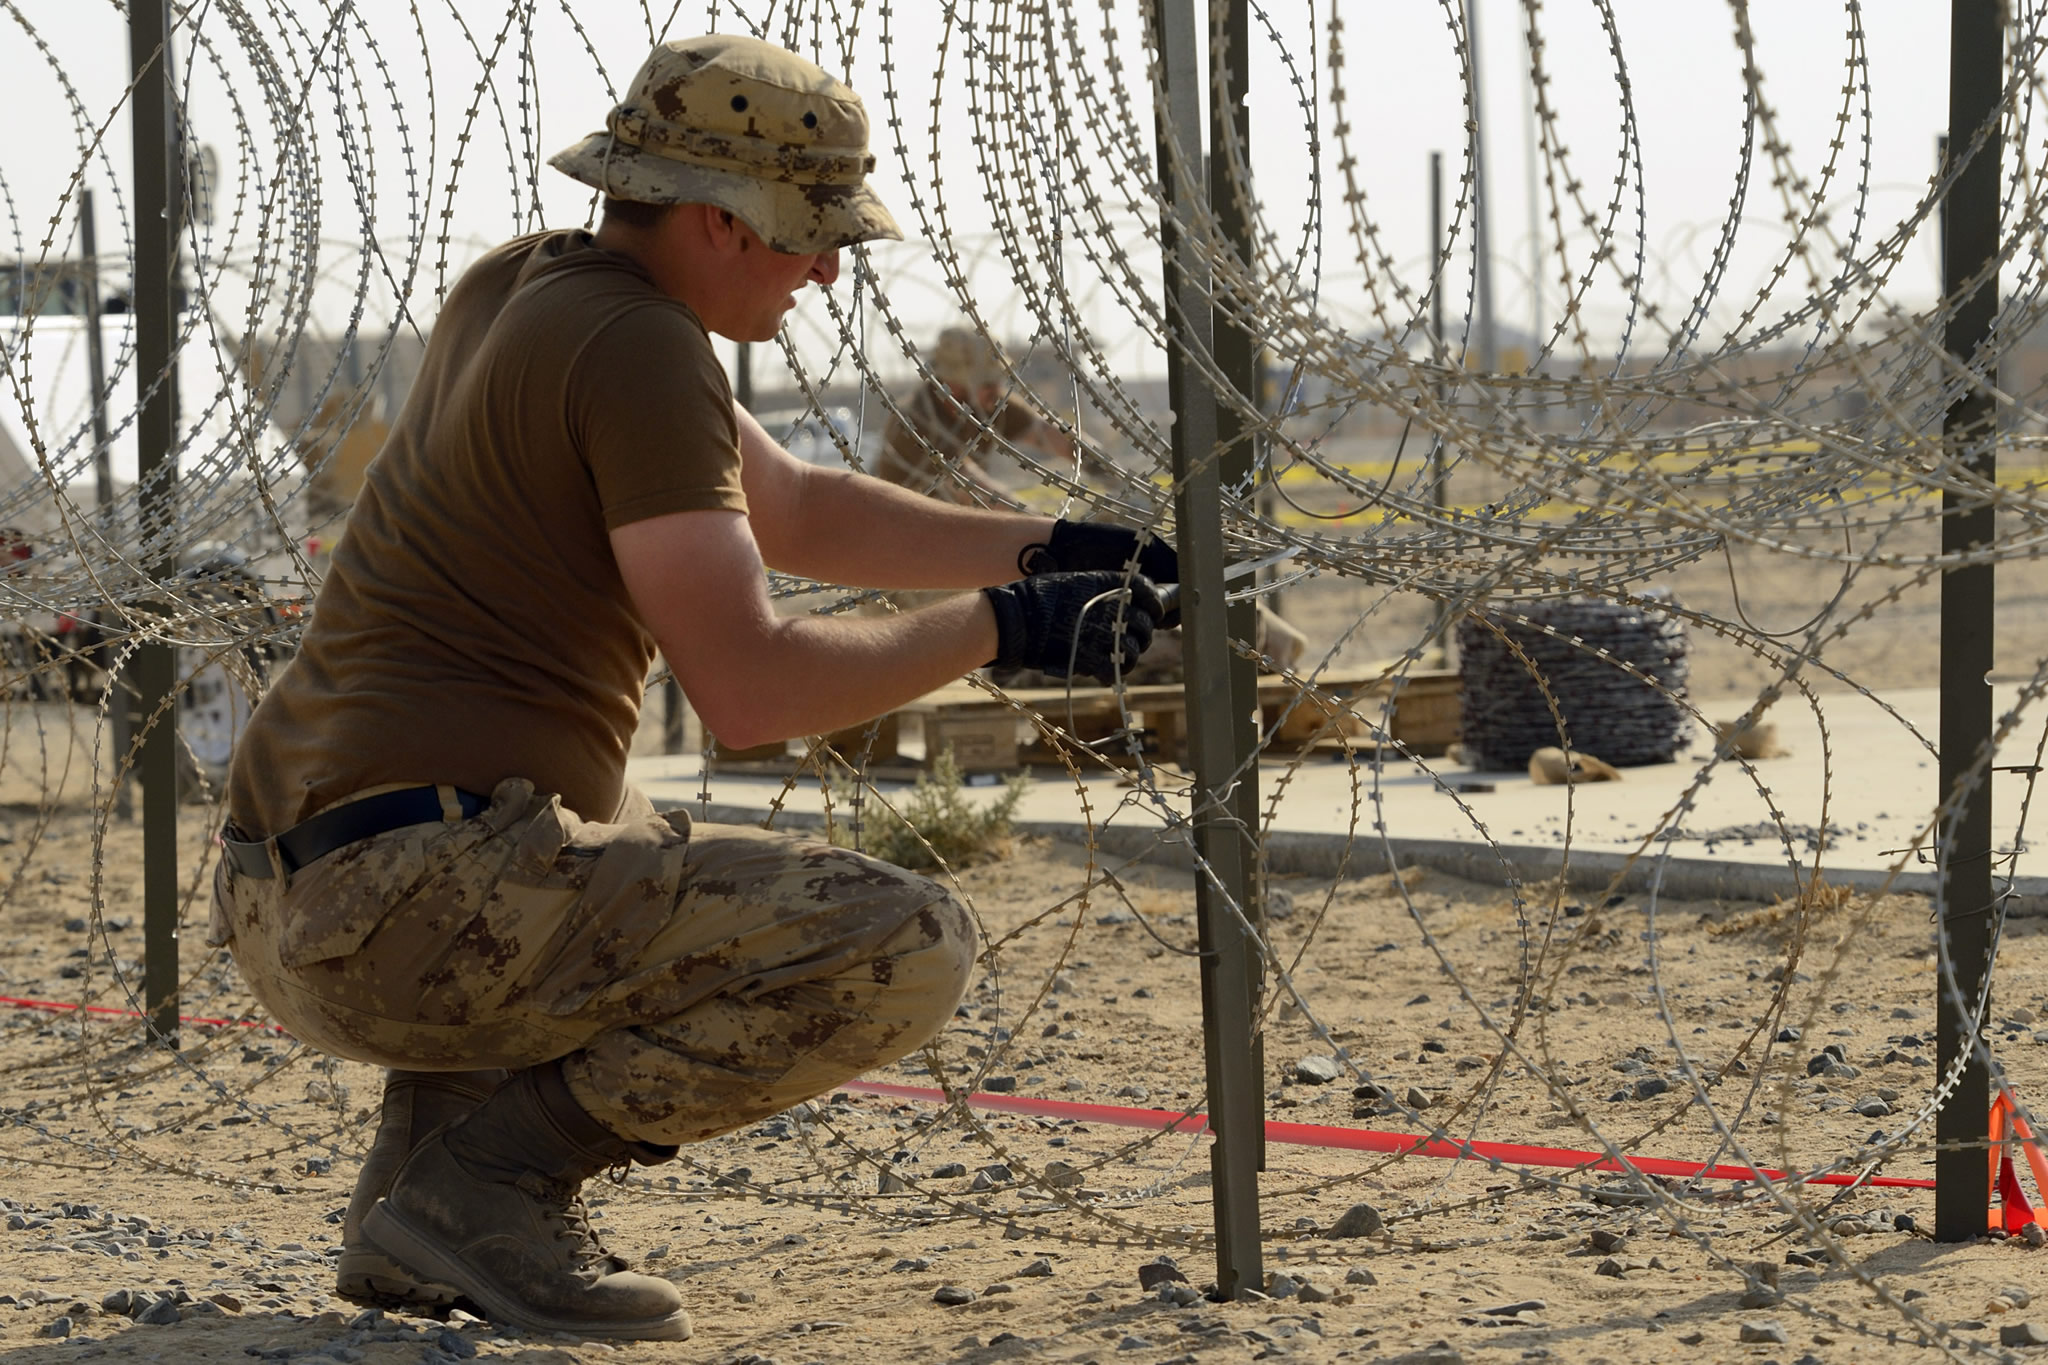 Kuwait. 14 November 2014 – A member of the Canadian Armed Forces reinforces concertina wire around the Canadian camp during Operation IMPACT on November 14, 2014 in Kuwait. (Photo GX2014-0052-170: Operation IMPACT, DND)